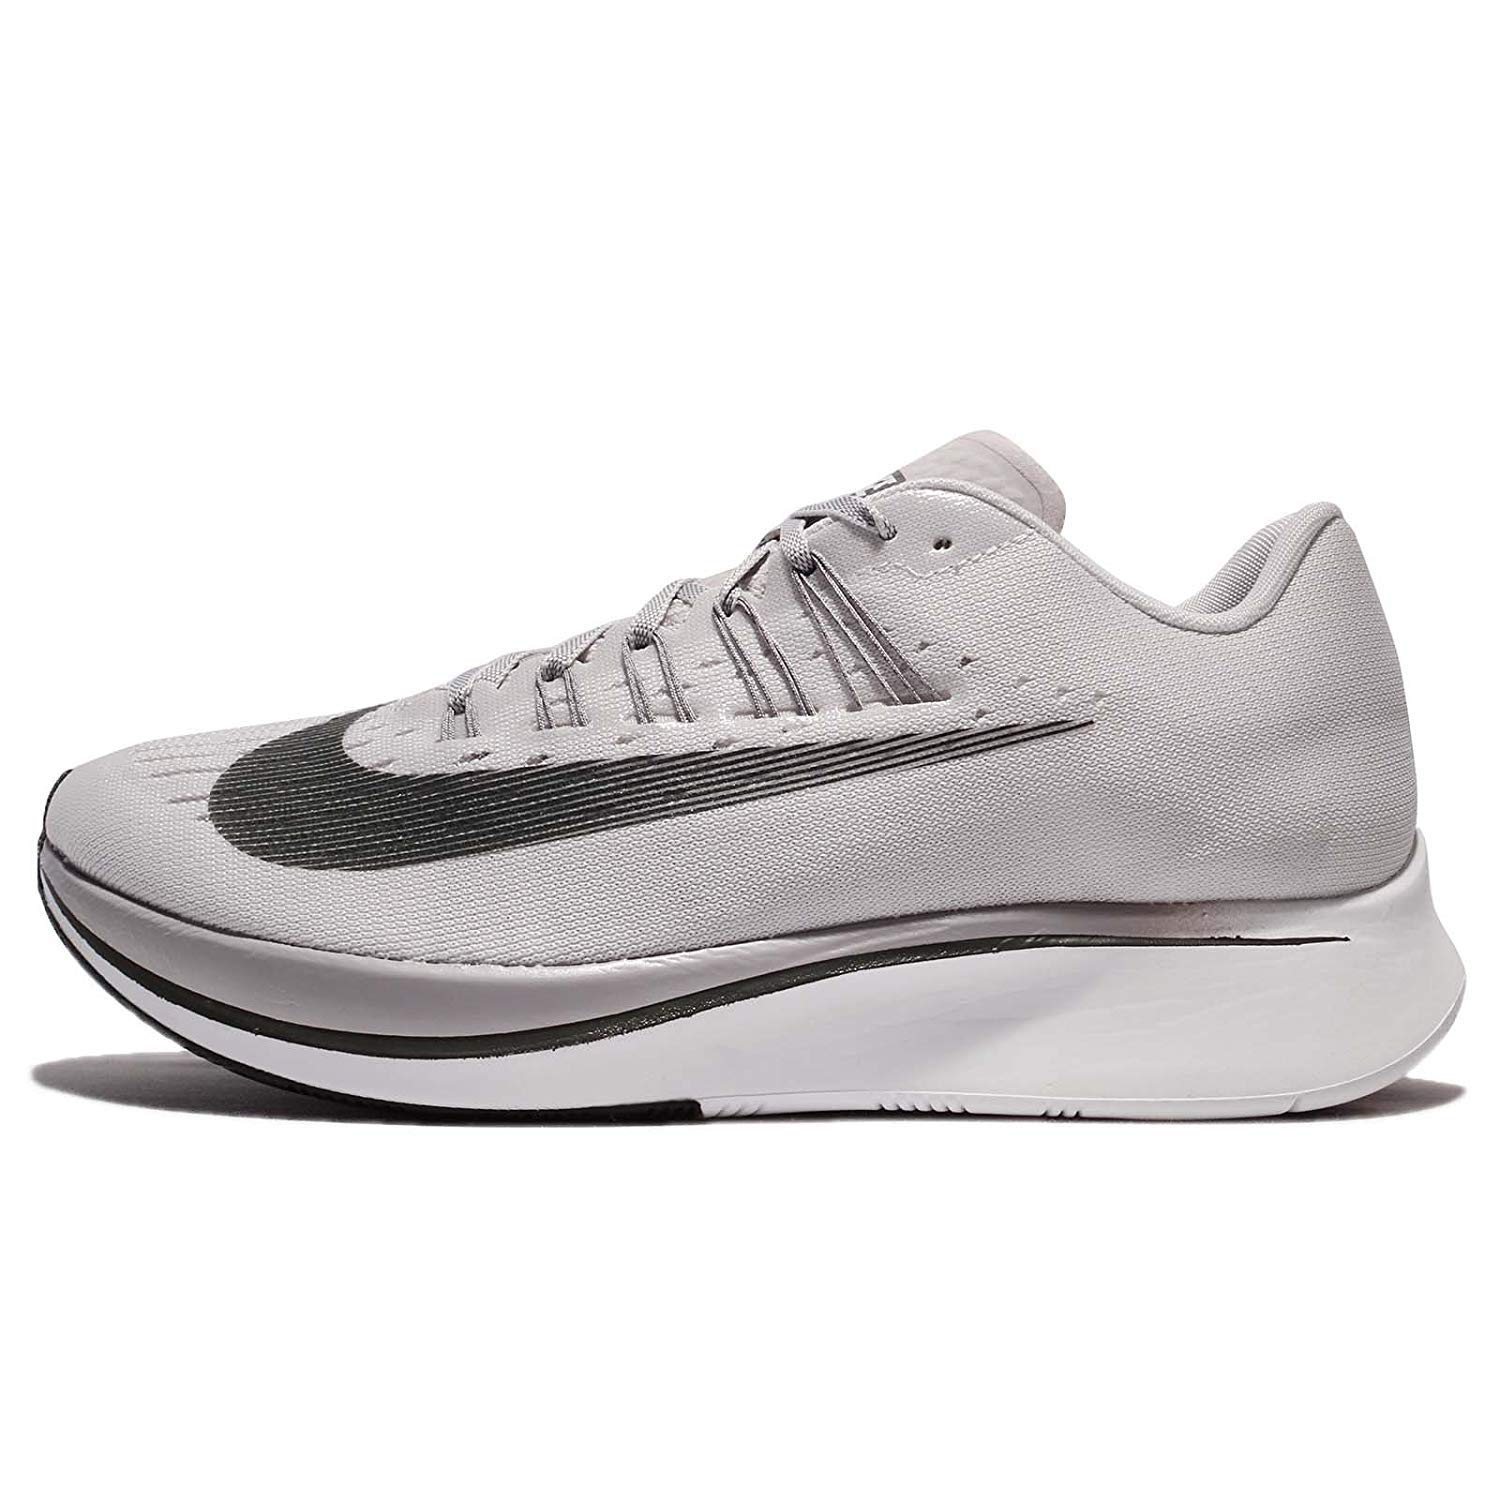 Vast Grey Anthracite-atmosphere Grey Nike Mens Zoom Fly SP Lightweight Trainer Running shoes